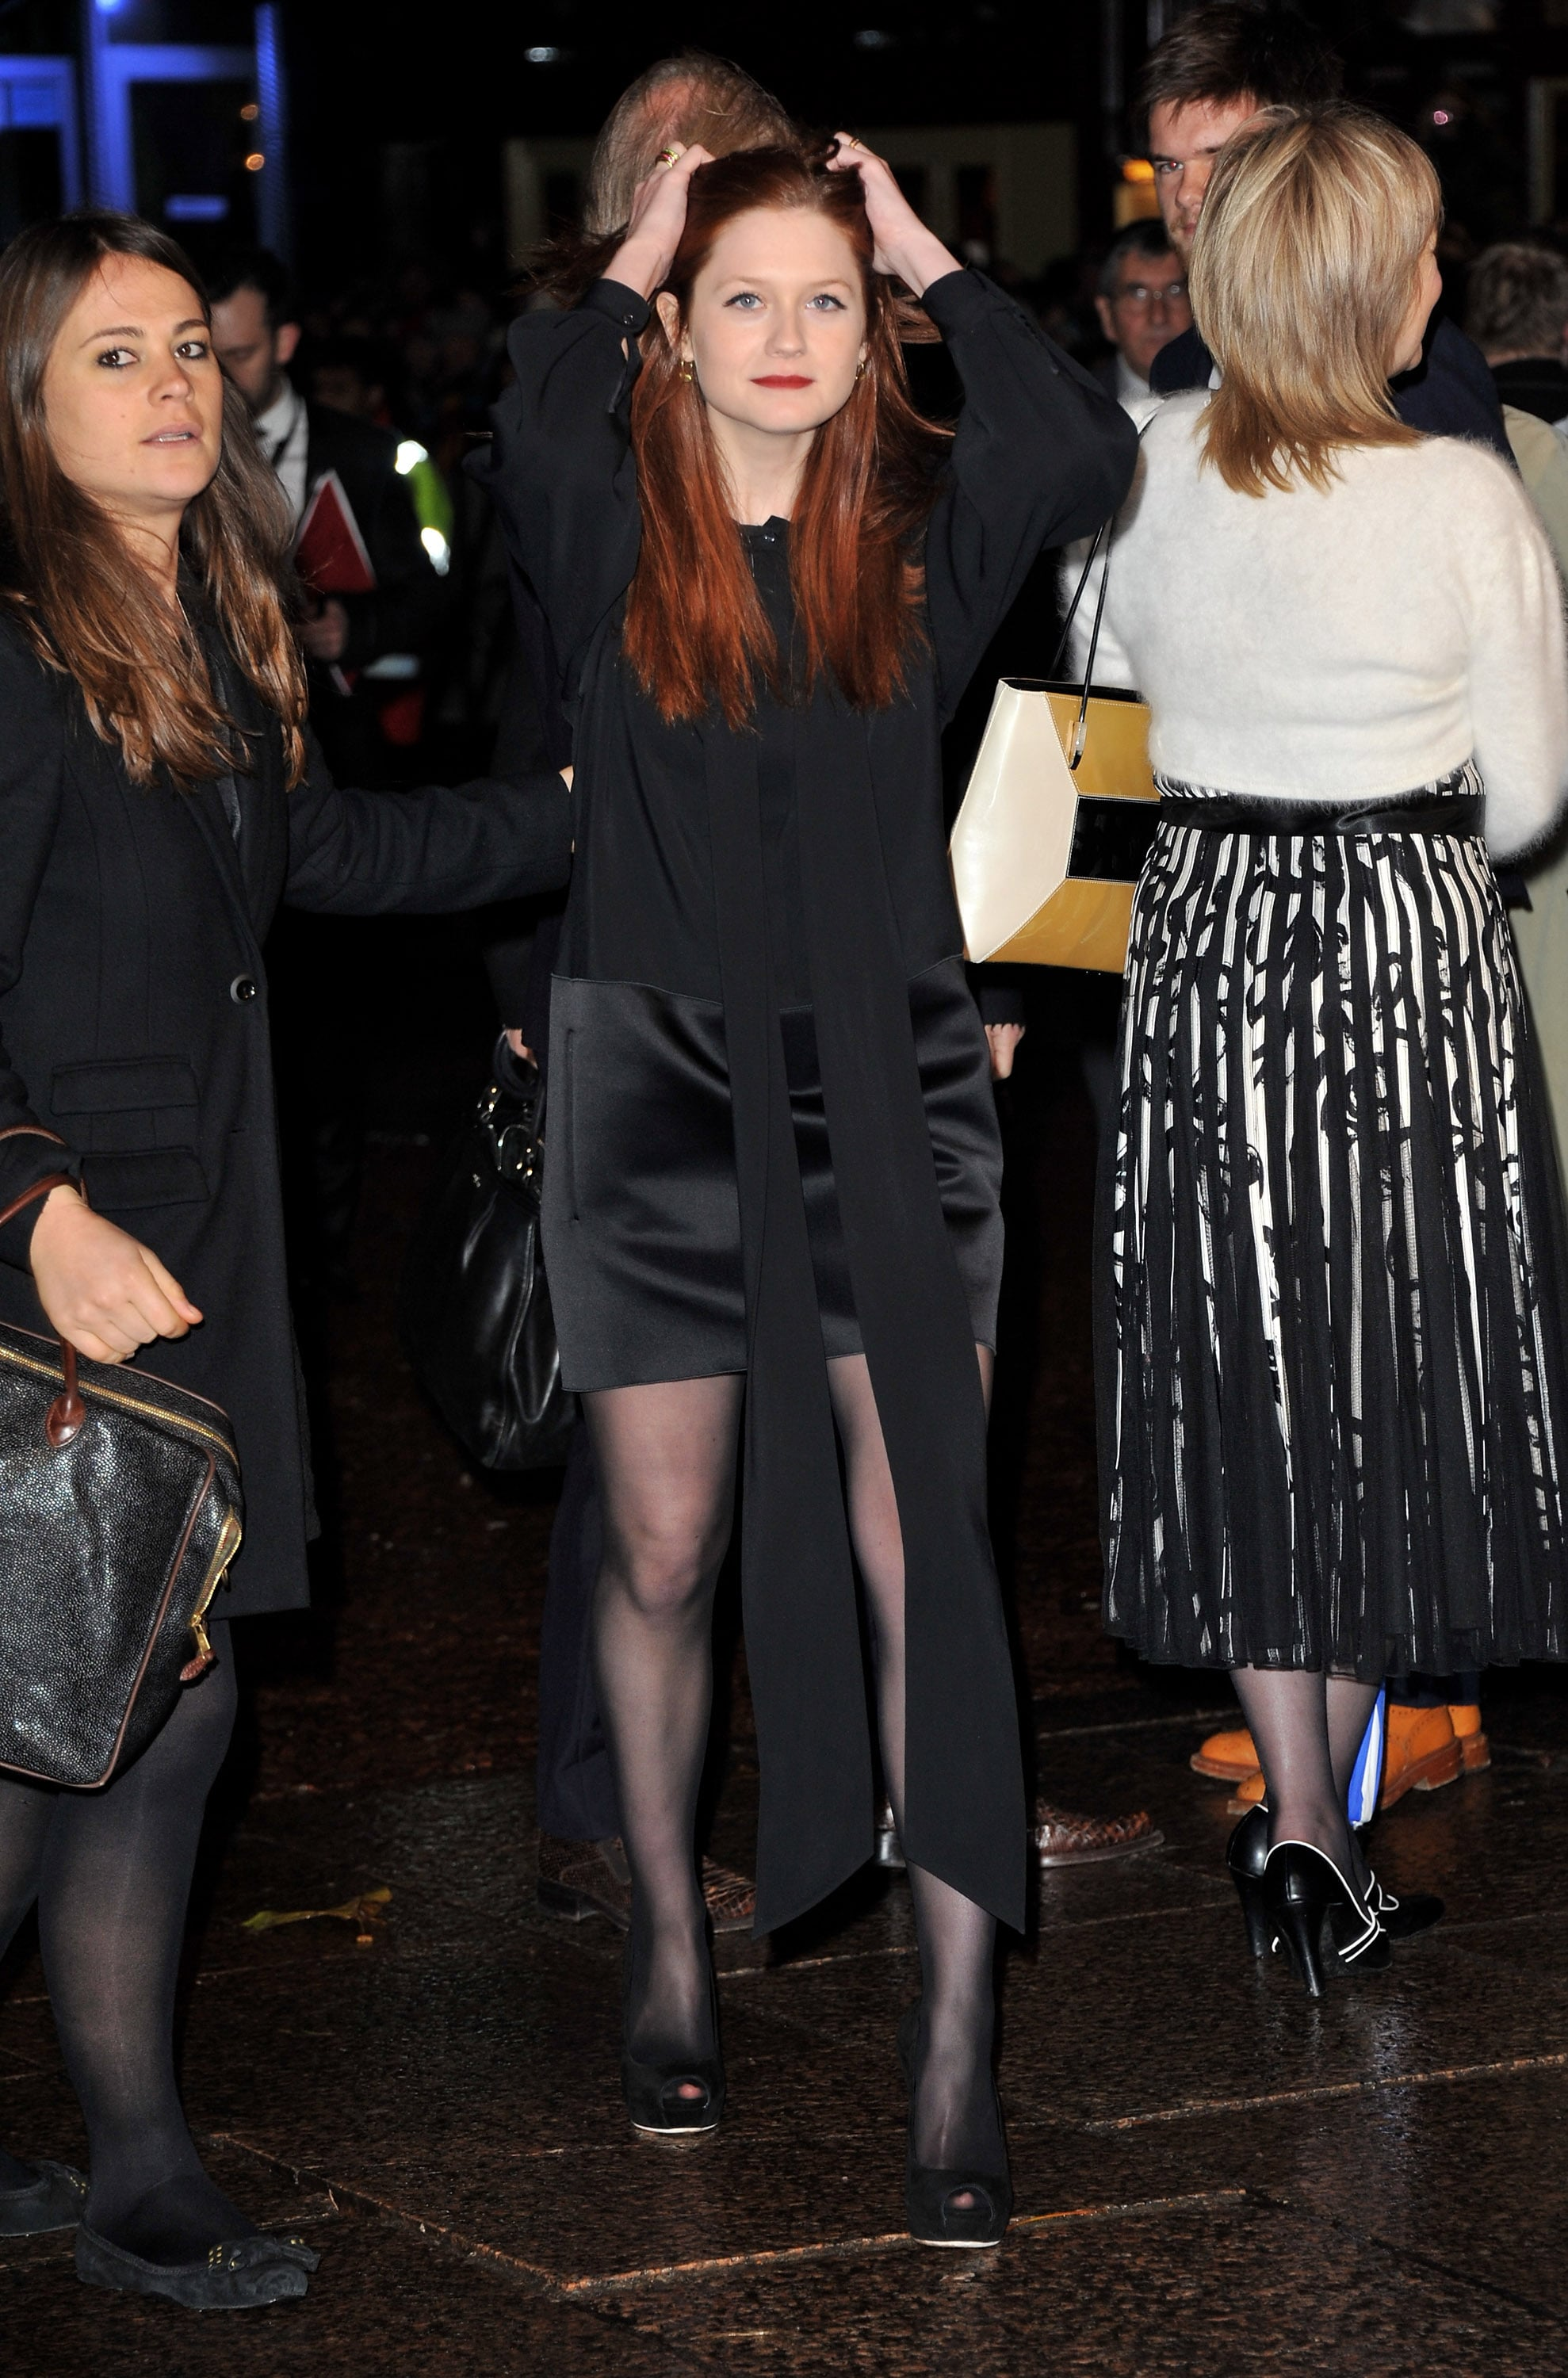 Pictures Of Bonnie Wright At Harry Potter And The Deathly